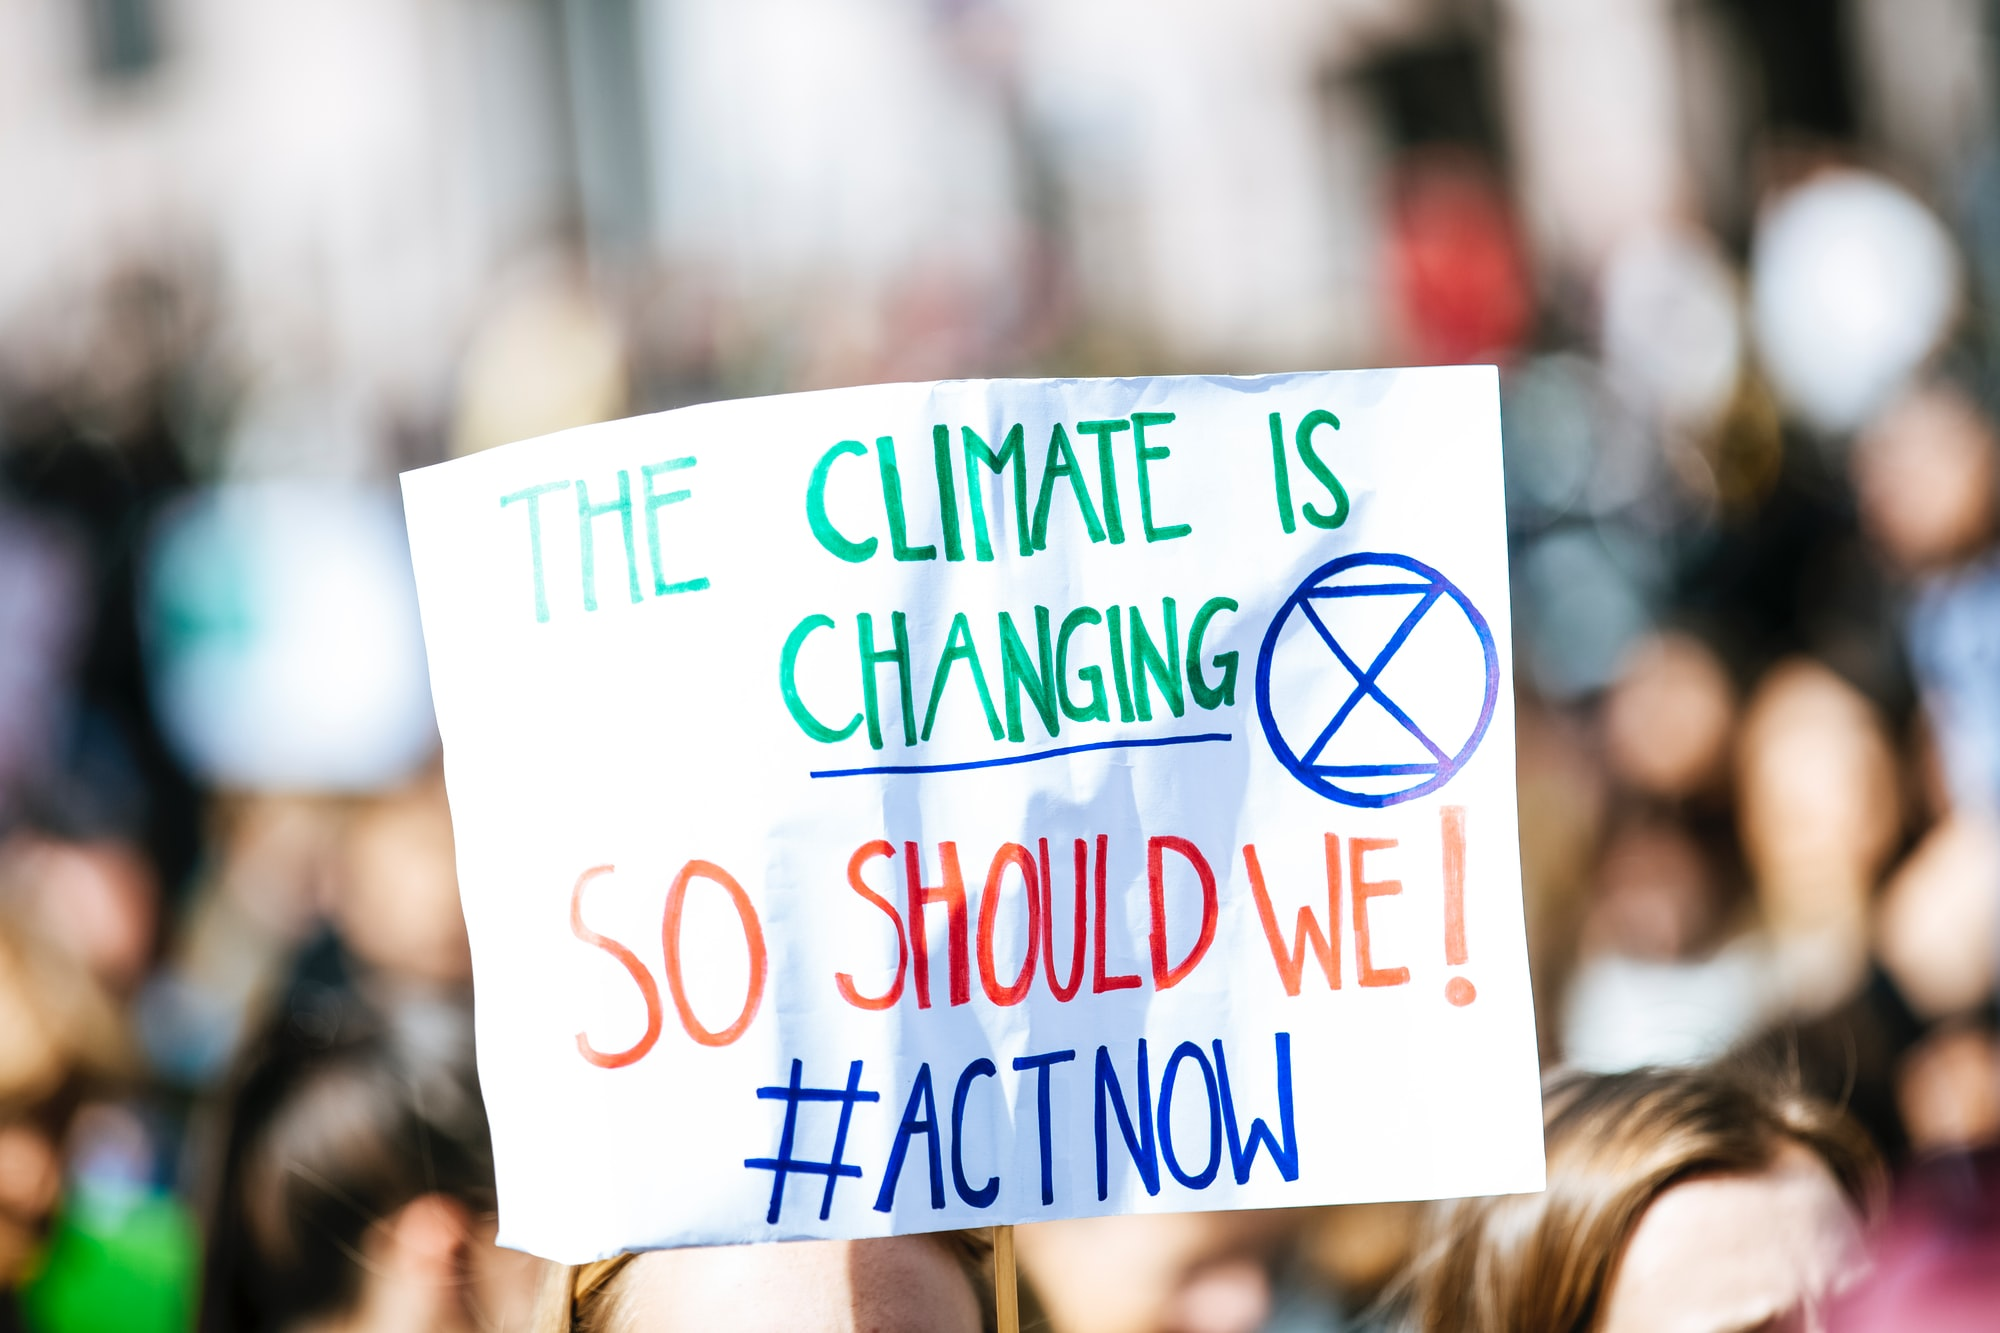 THE CLIMATE IS CHANGING - SO SHOULD WE! #ACTNOW. Global climate change strike - No Planet B - 09-20-2019